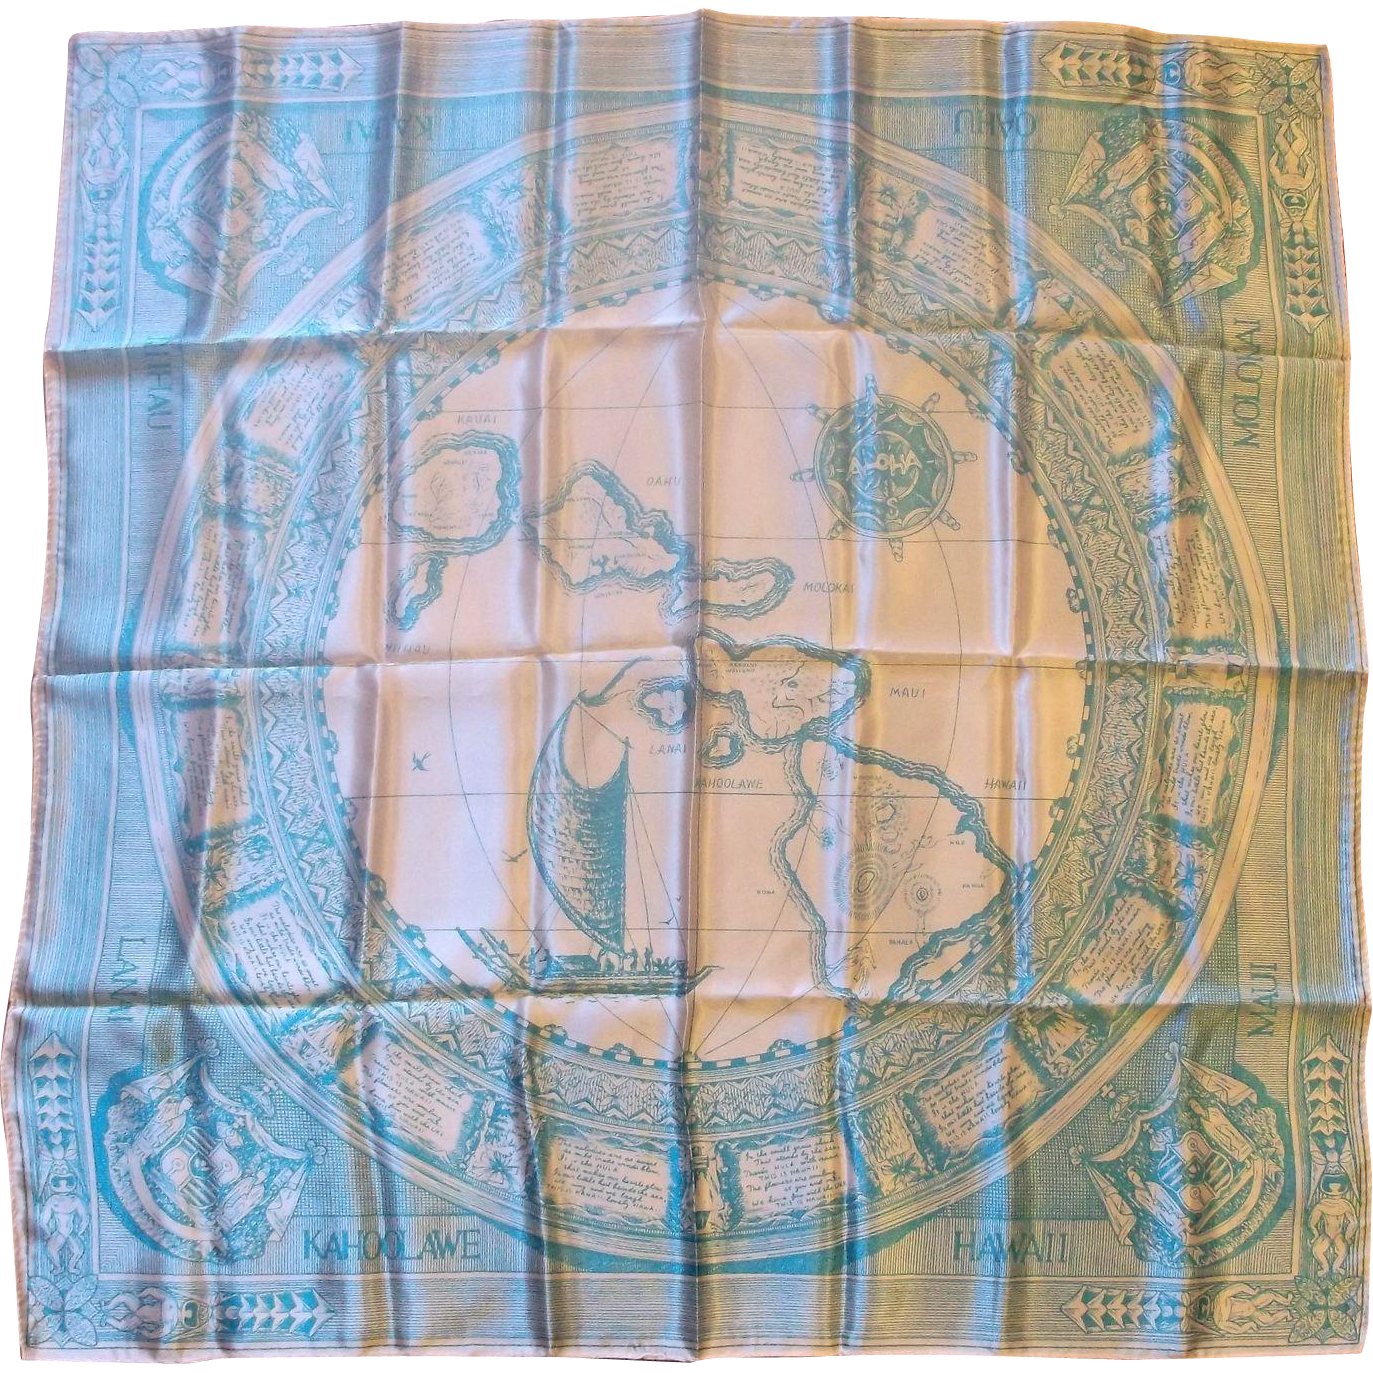 Hawaii Souvenir Travel Map Scarf Acetate Made in Japan Blue White 30 IN.